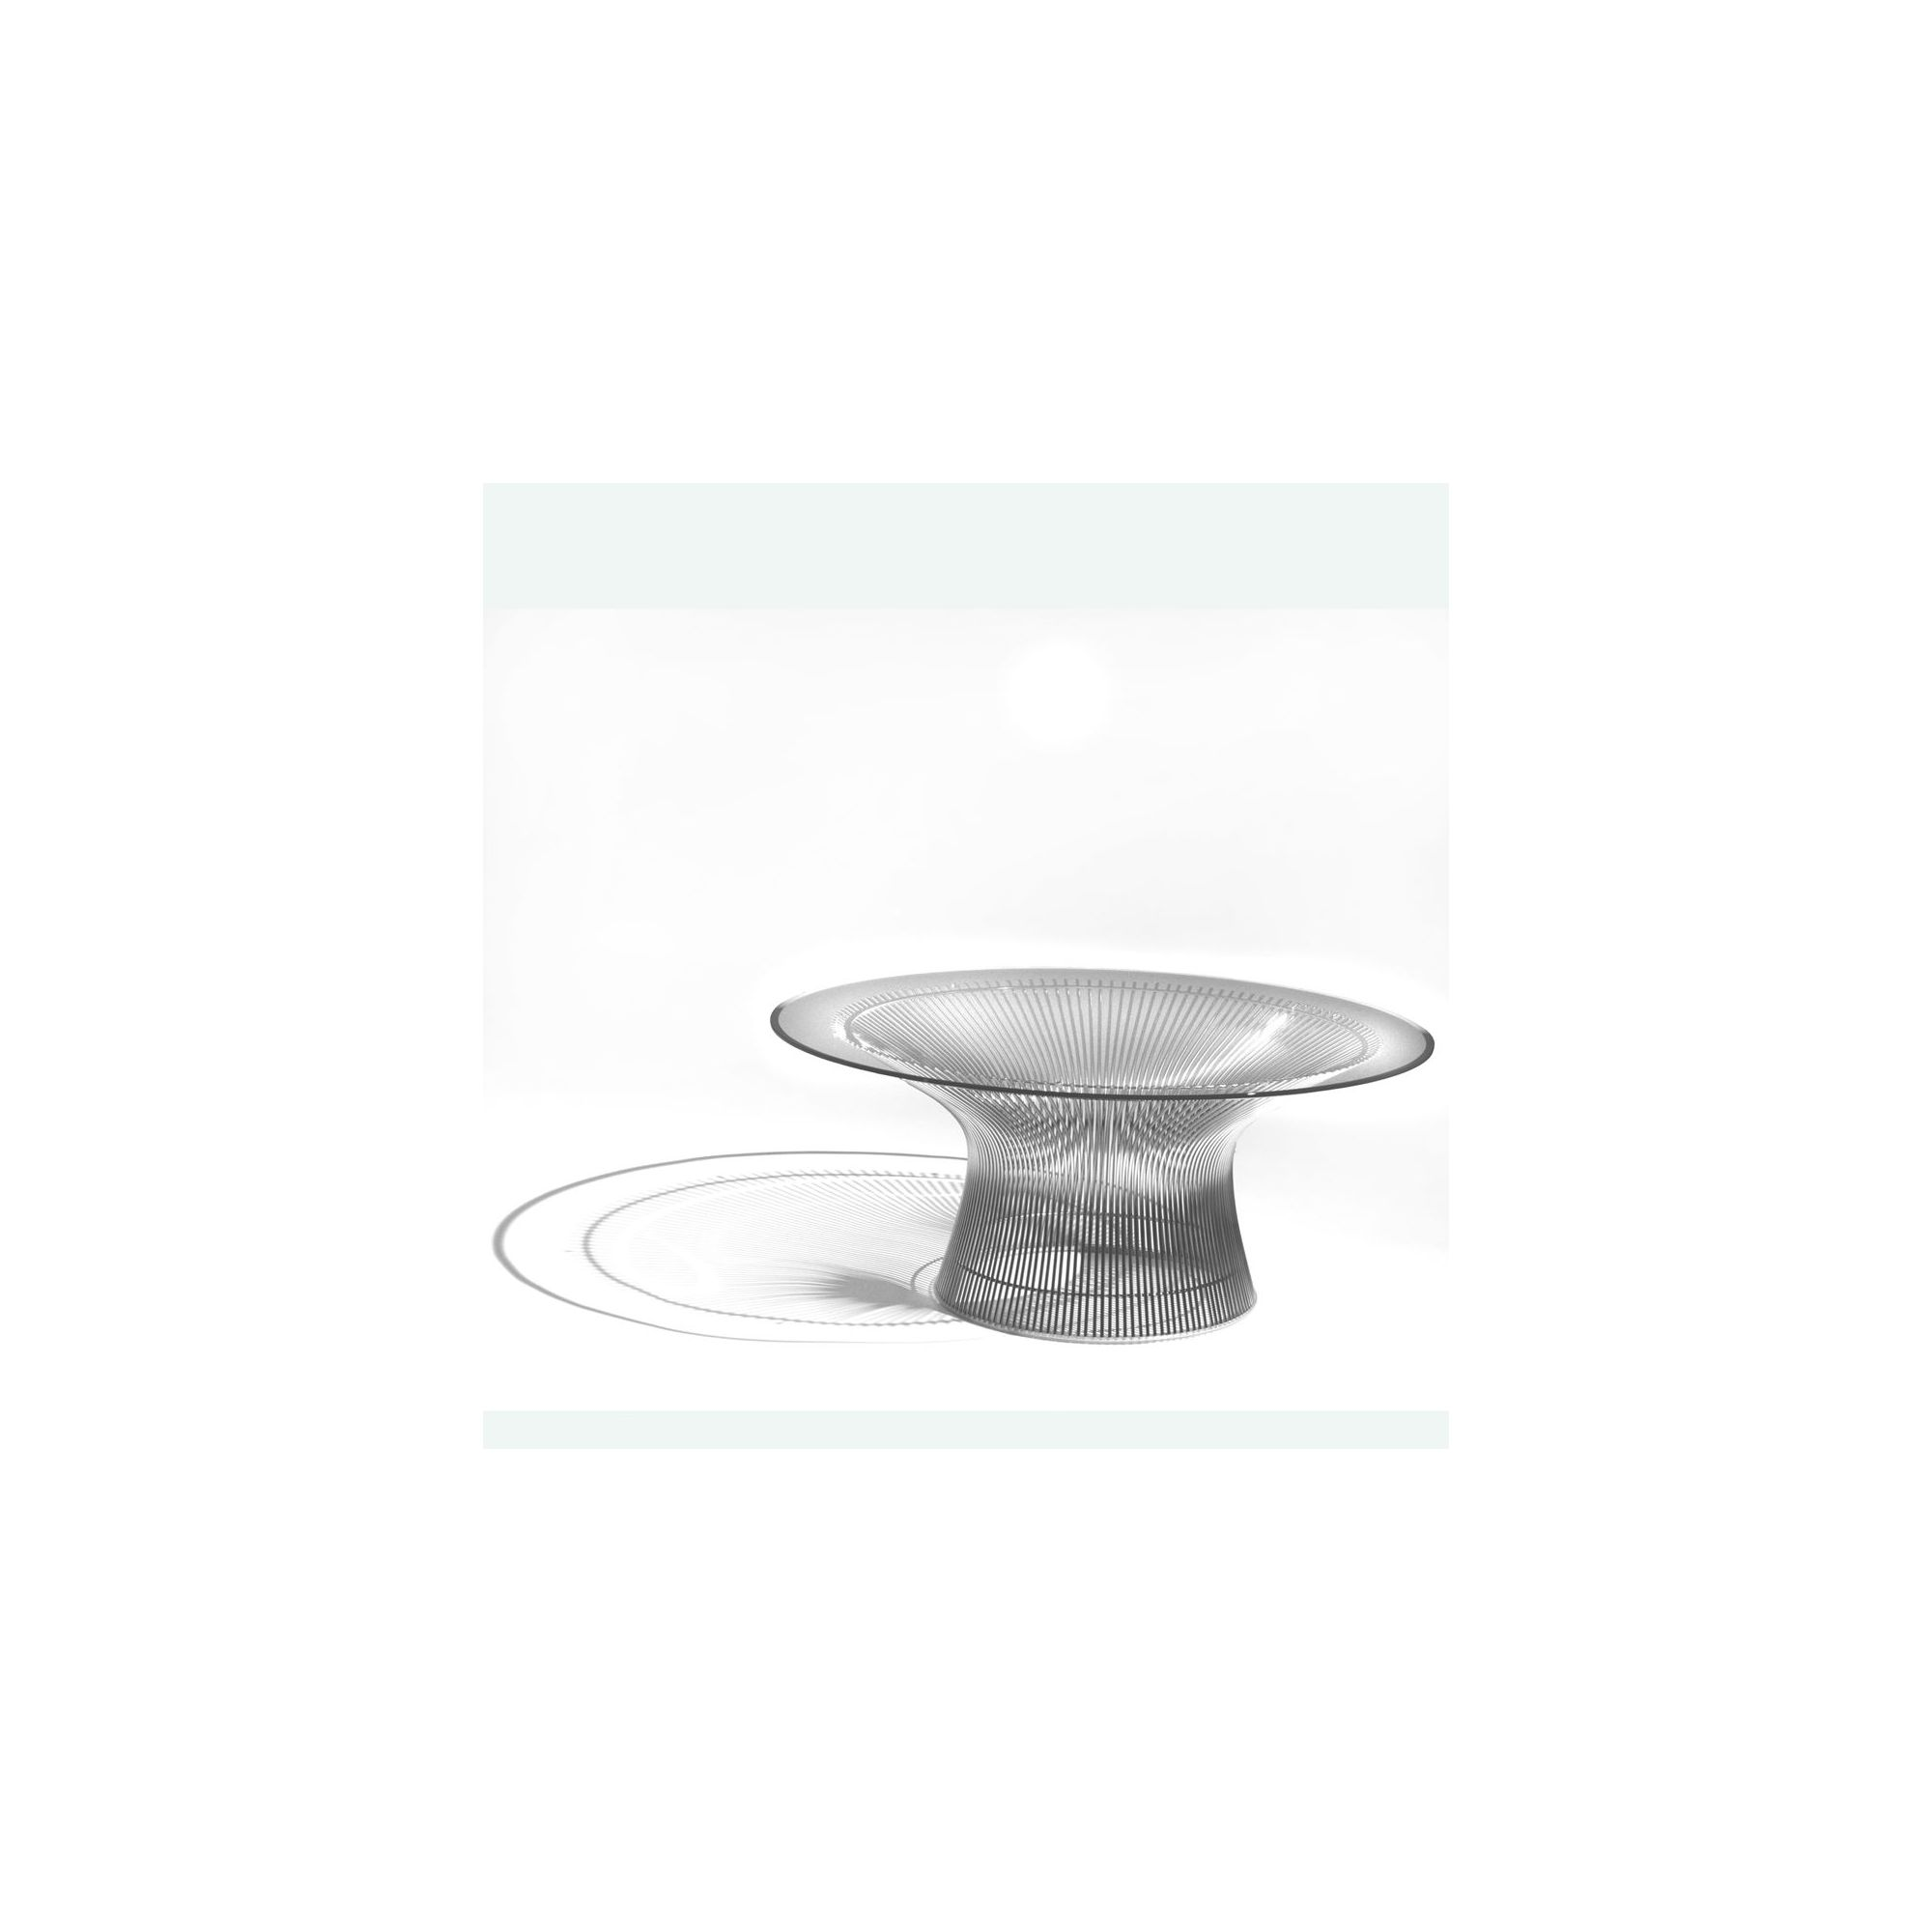 Knoll Coffee Table by Warren Platner - 91.5cm Dia / Polished Nickel / Bronze Glas at Tesco Direct